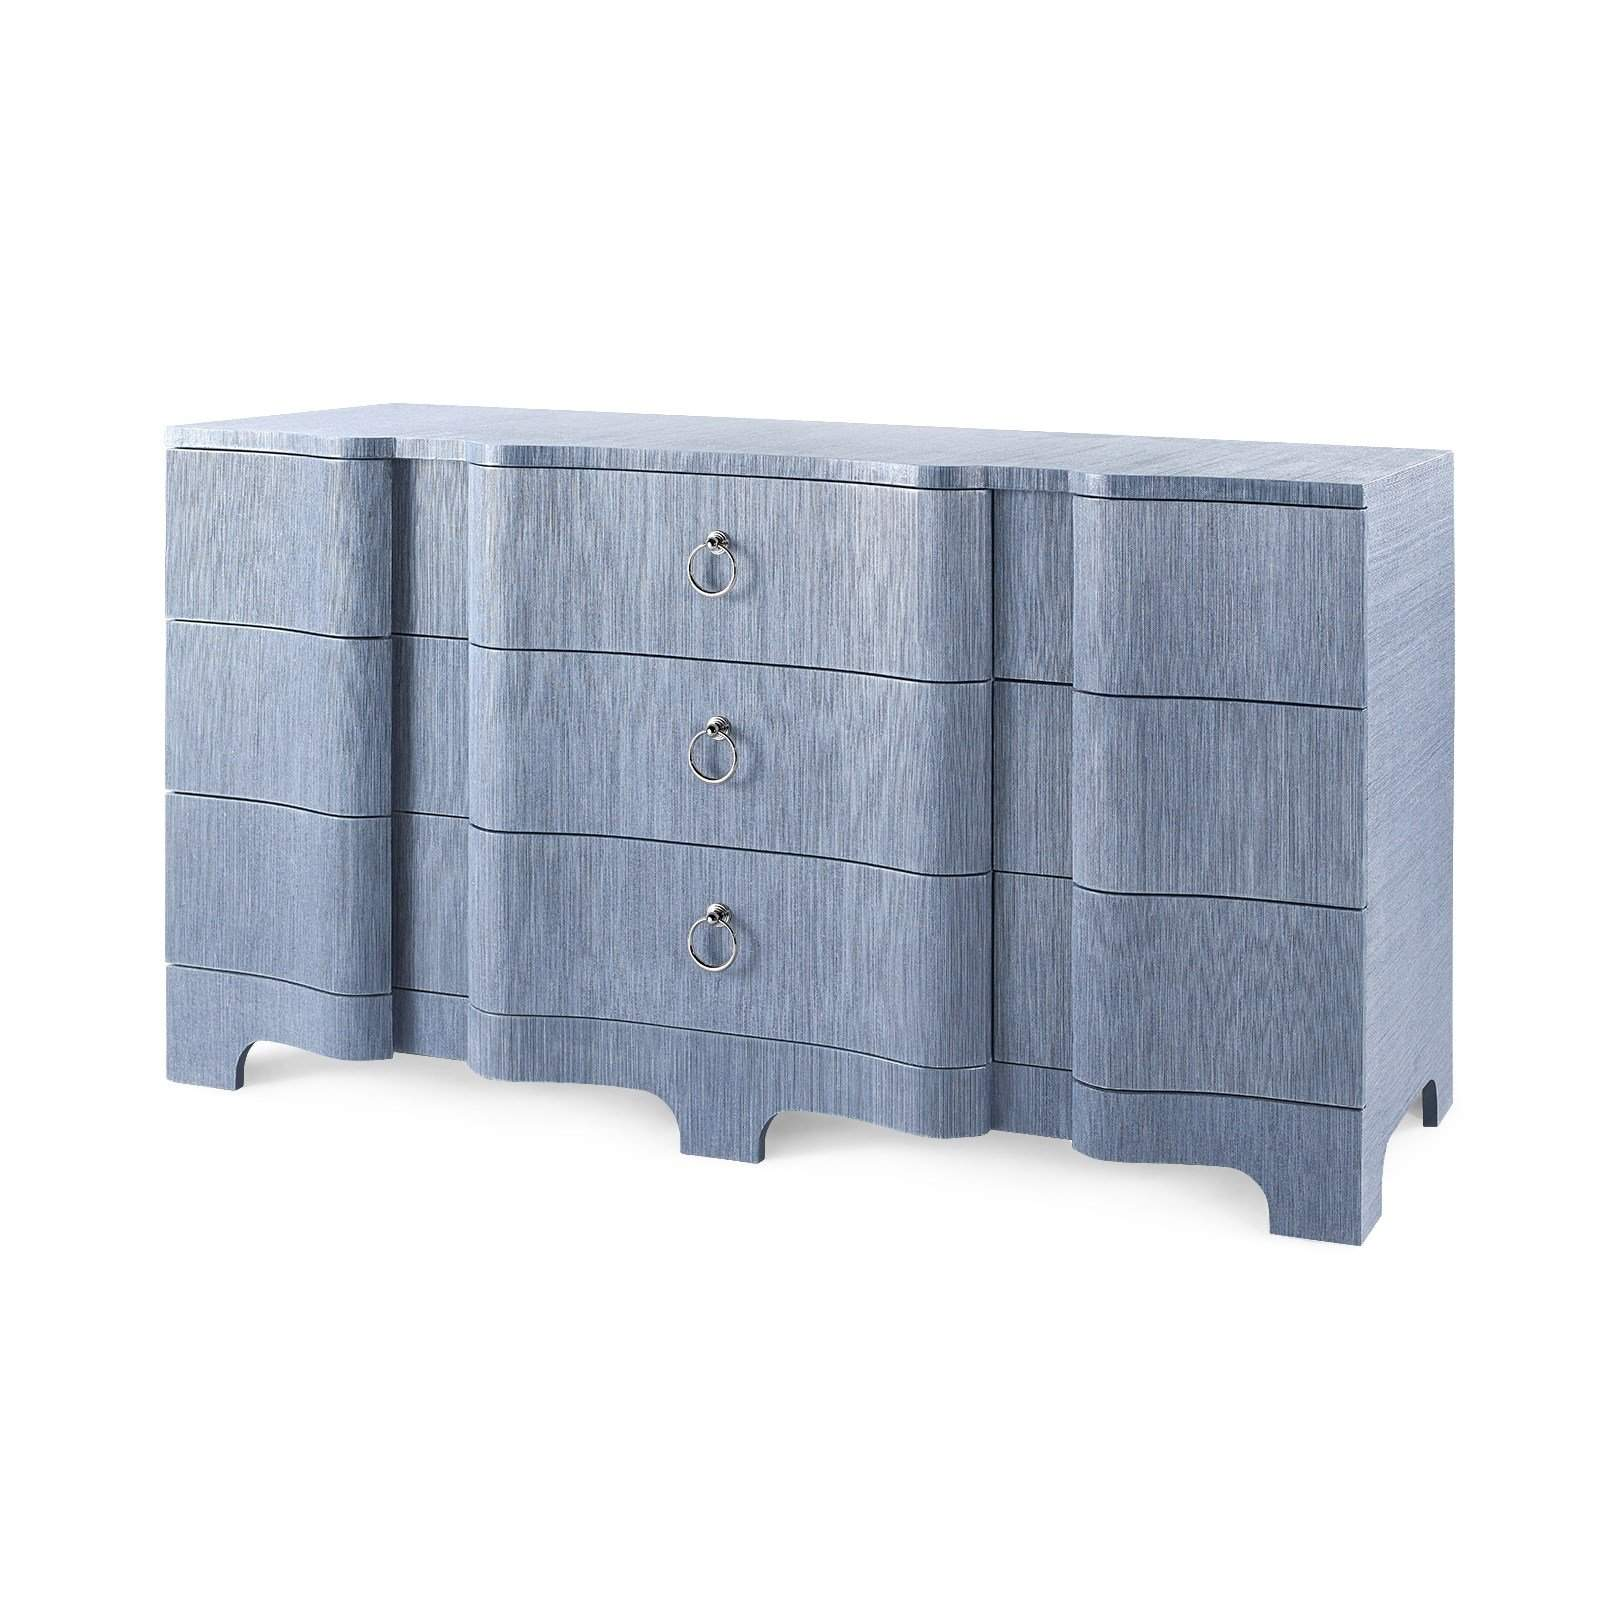 Bungalow 5 - BARDOT EXTRA LARGE 9-DRAWER in NAVY BLUE